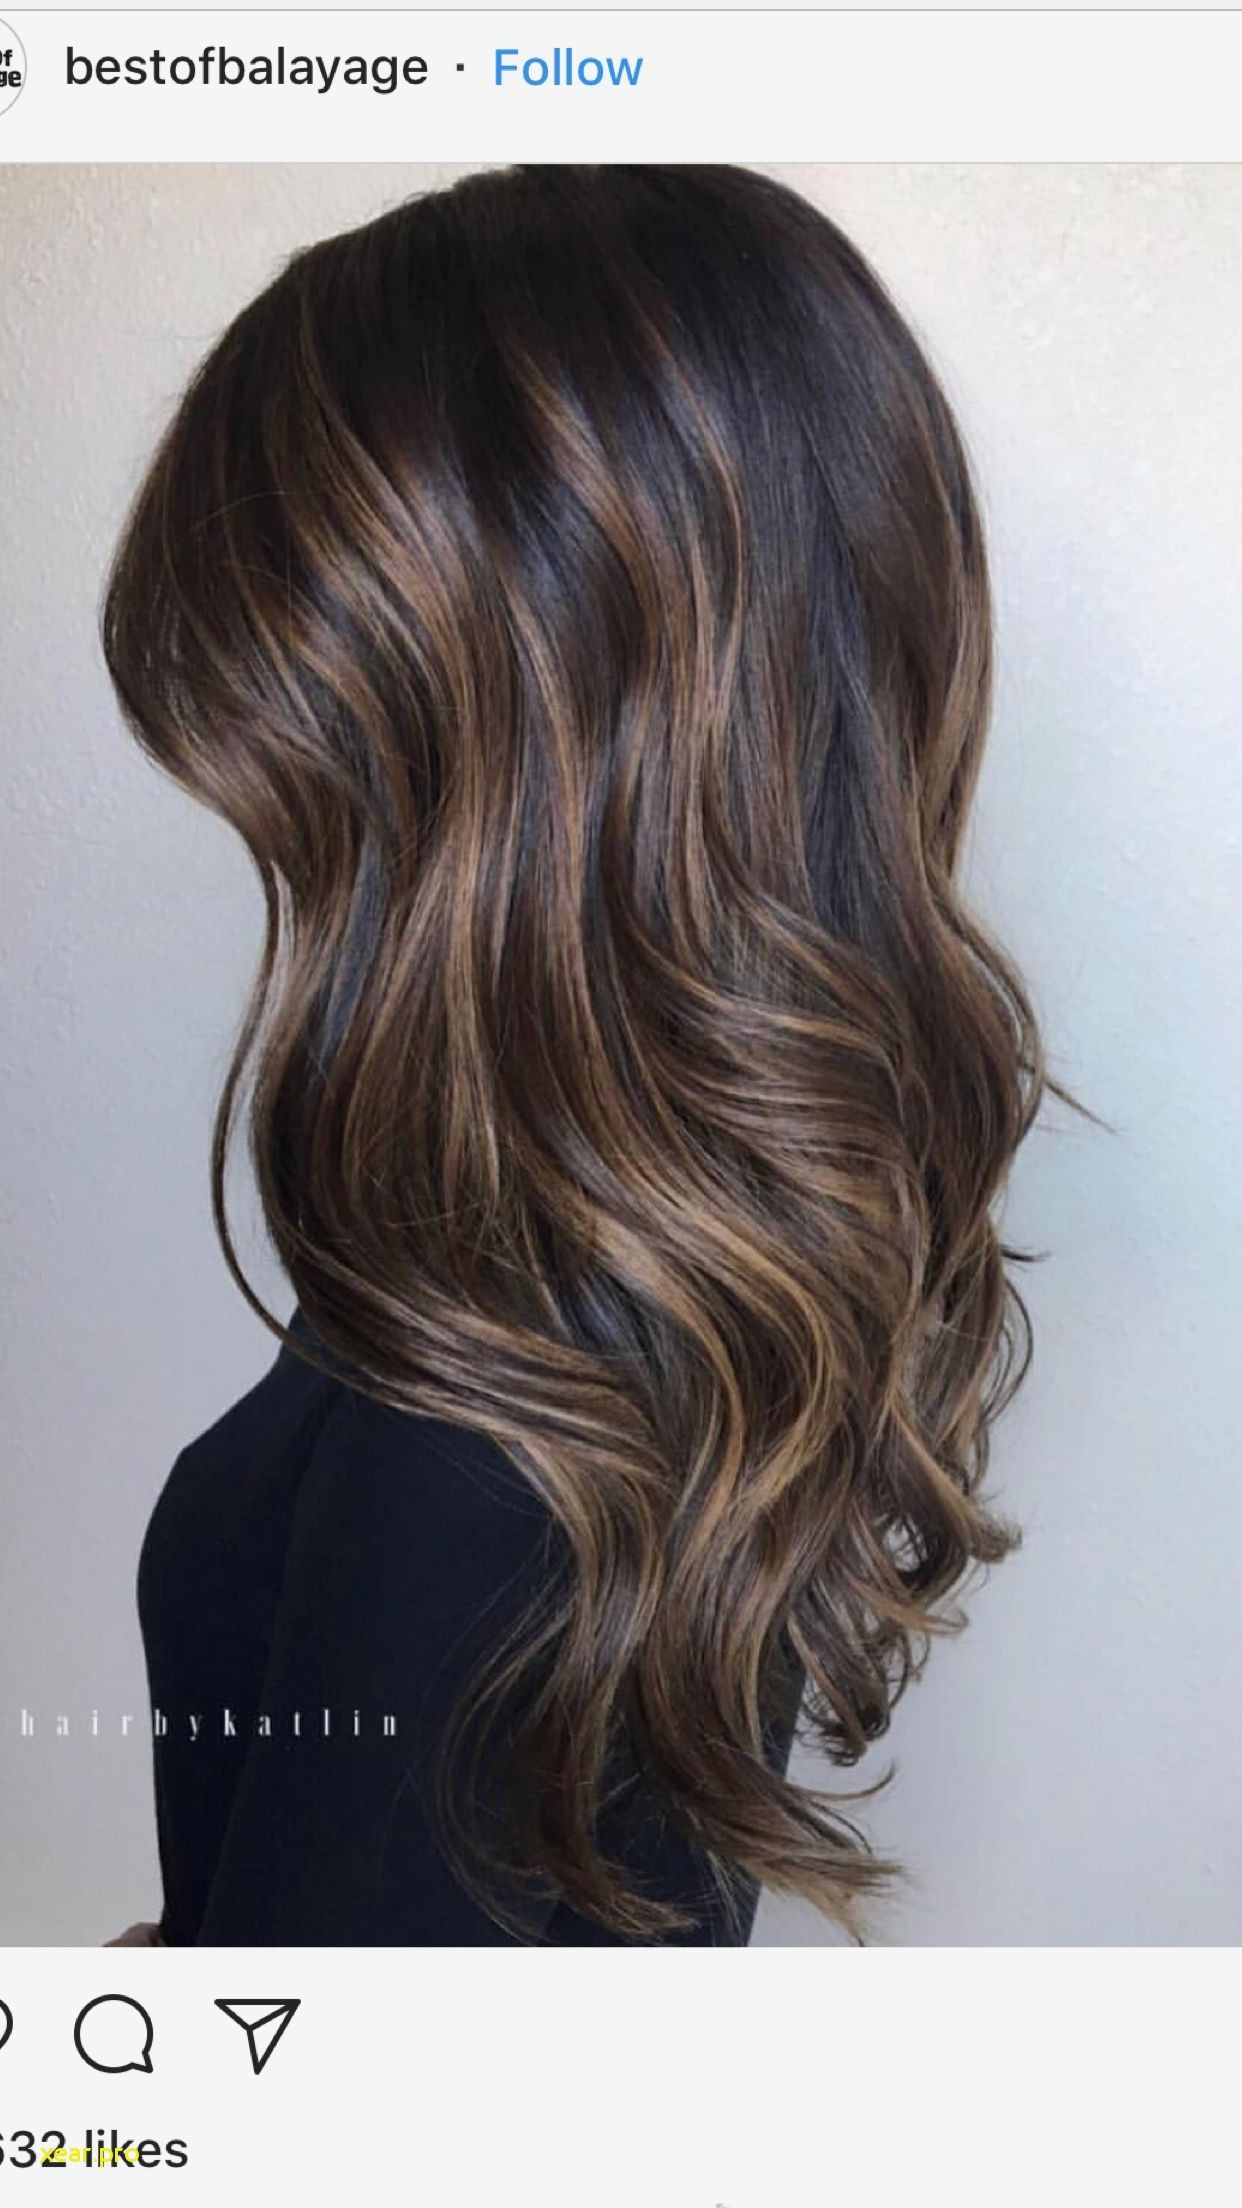 New Hair Color 2018 For Morena Brown Hair Colors Brown Hair With Highlights Hair Color Highlights